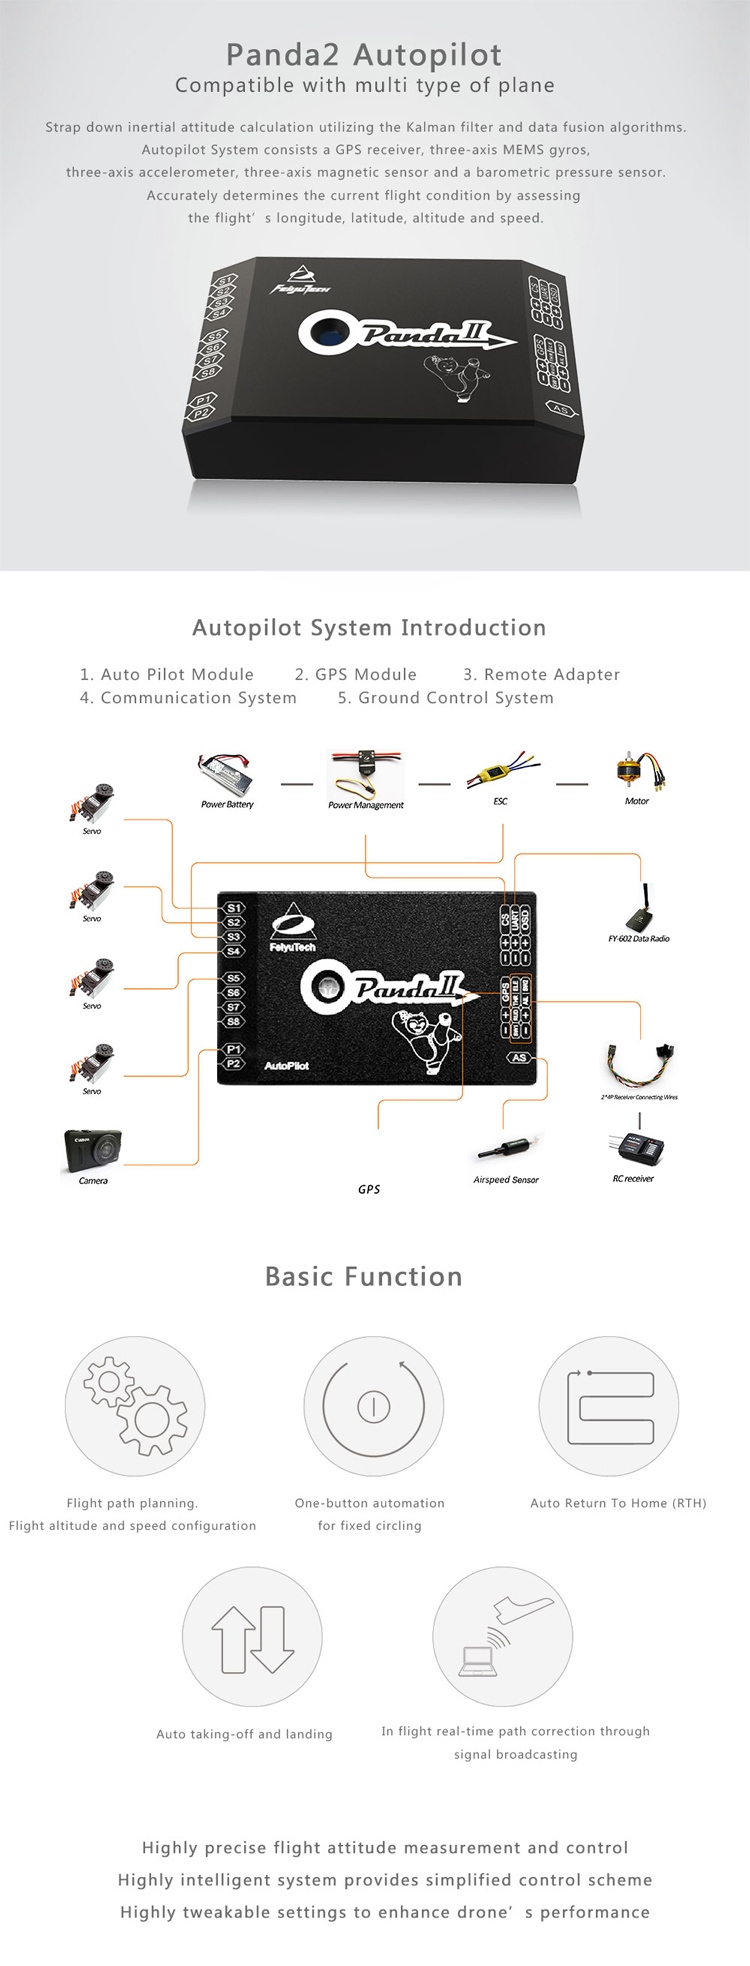 FeiyuTech panda2 frofesssional autopilot for fixed wing uav plane aerial surveying and mapping